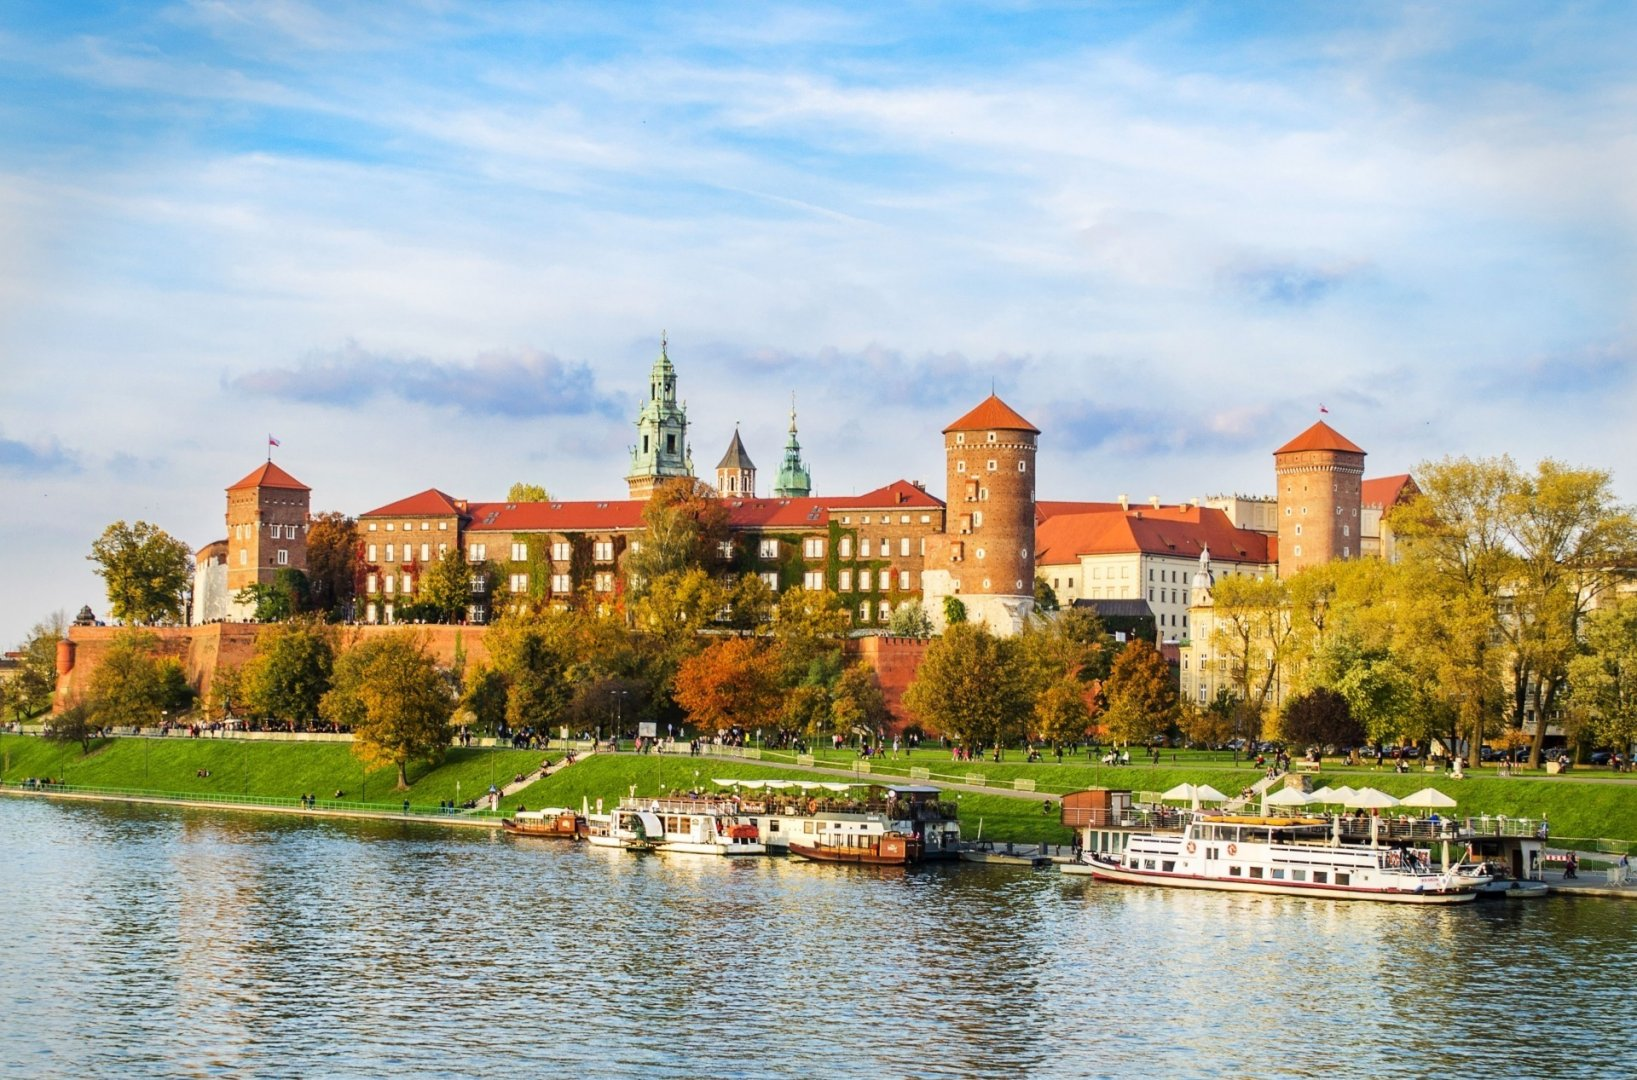 What should you see in Krakow in winter?